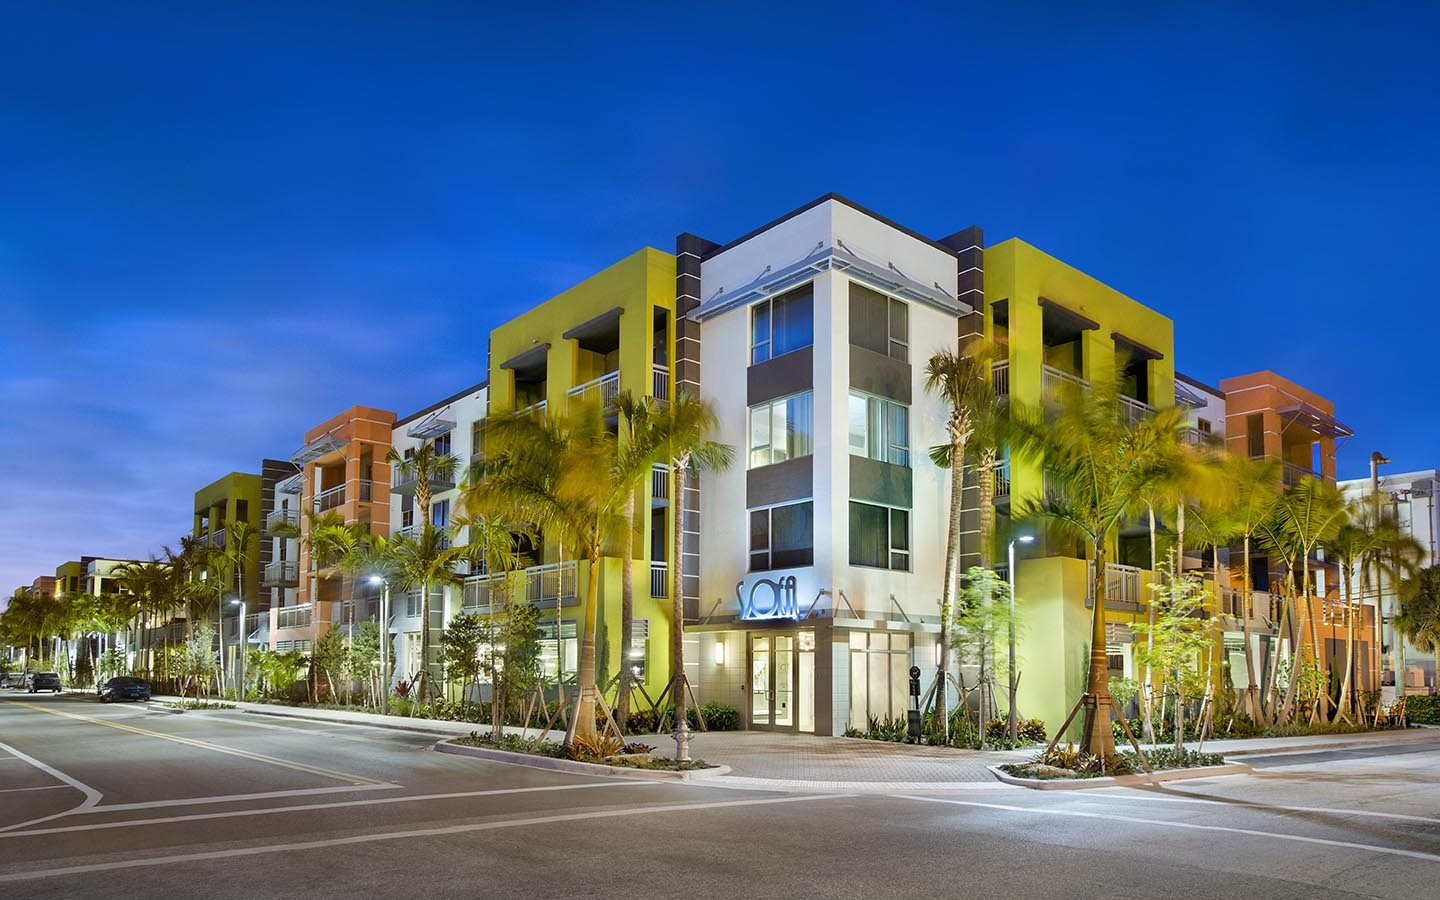 Comfortable Apartments With Thoughtful Amenities At Sofa Downtown Luxury Delray Beach 33483